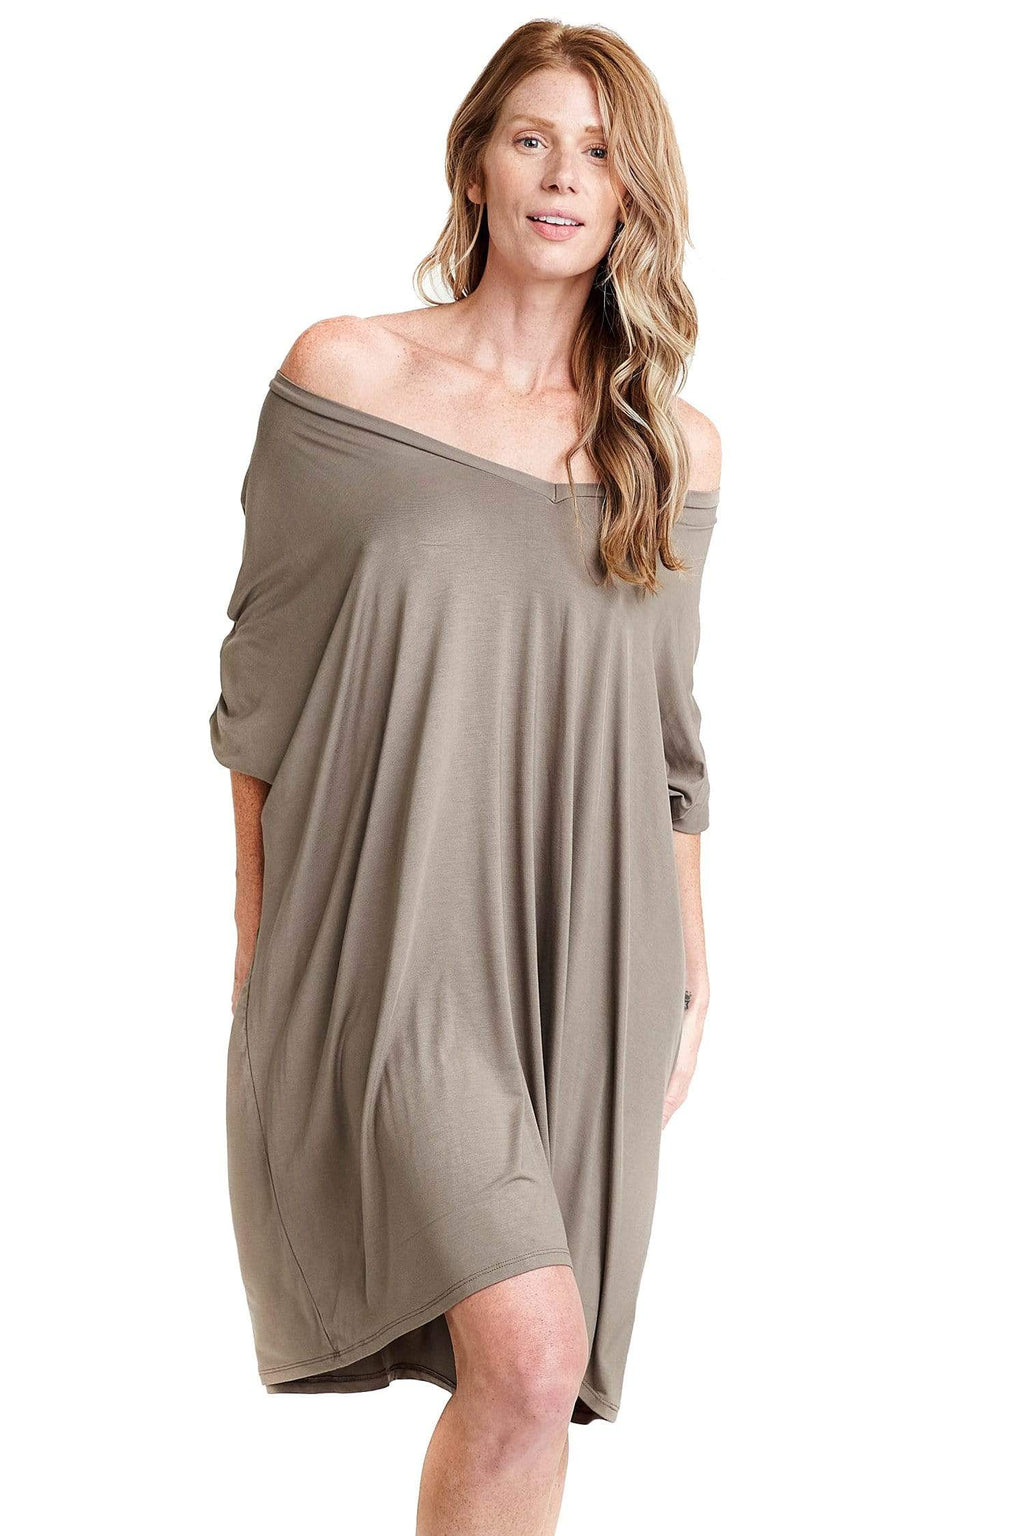 shop-sofia Maxine Taupe Dress Sofia Collections Italian Silk Linen Satin